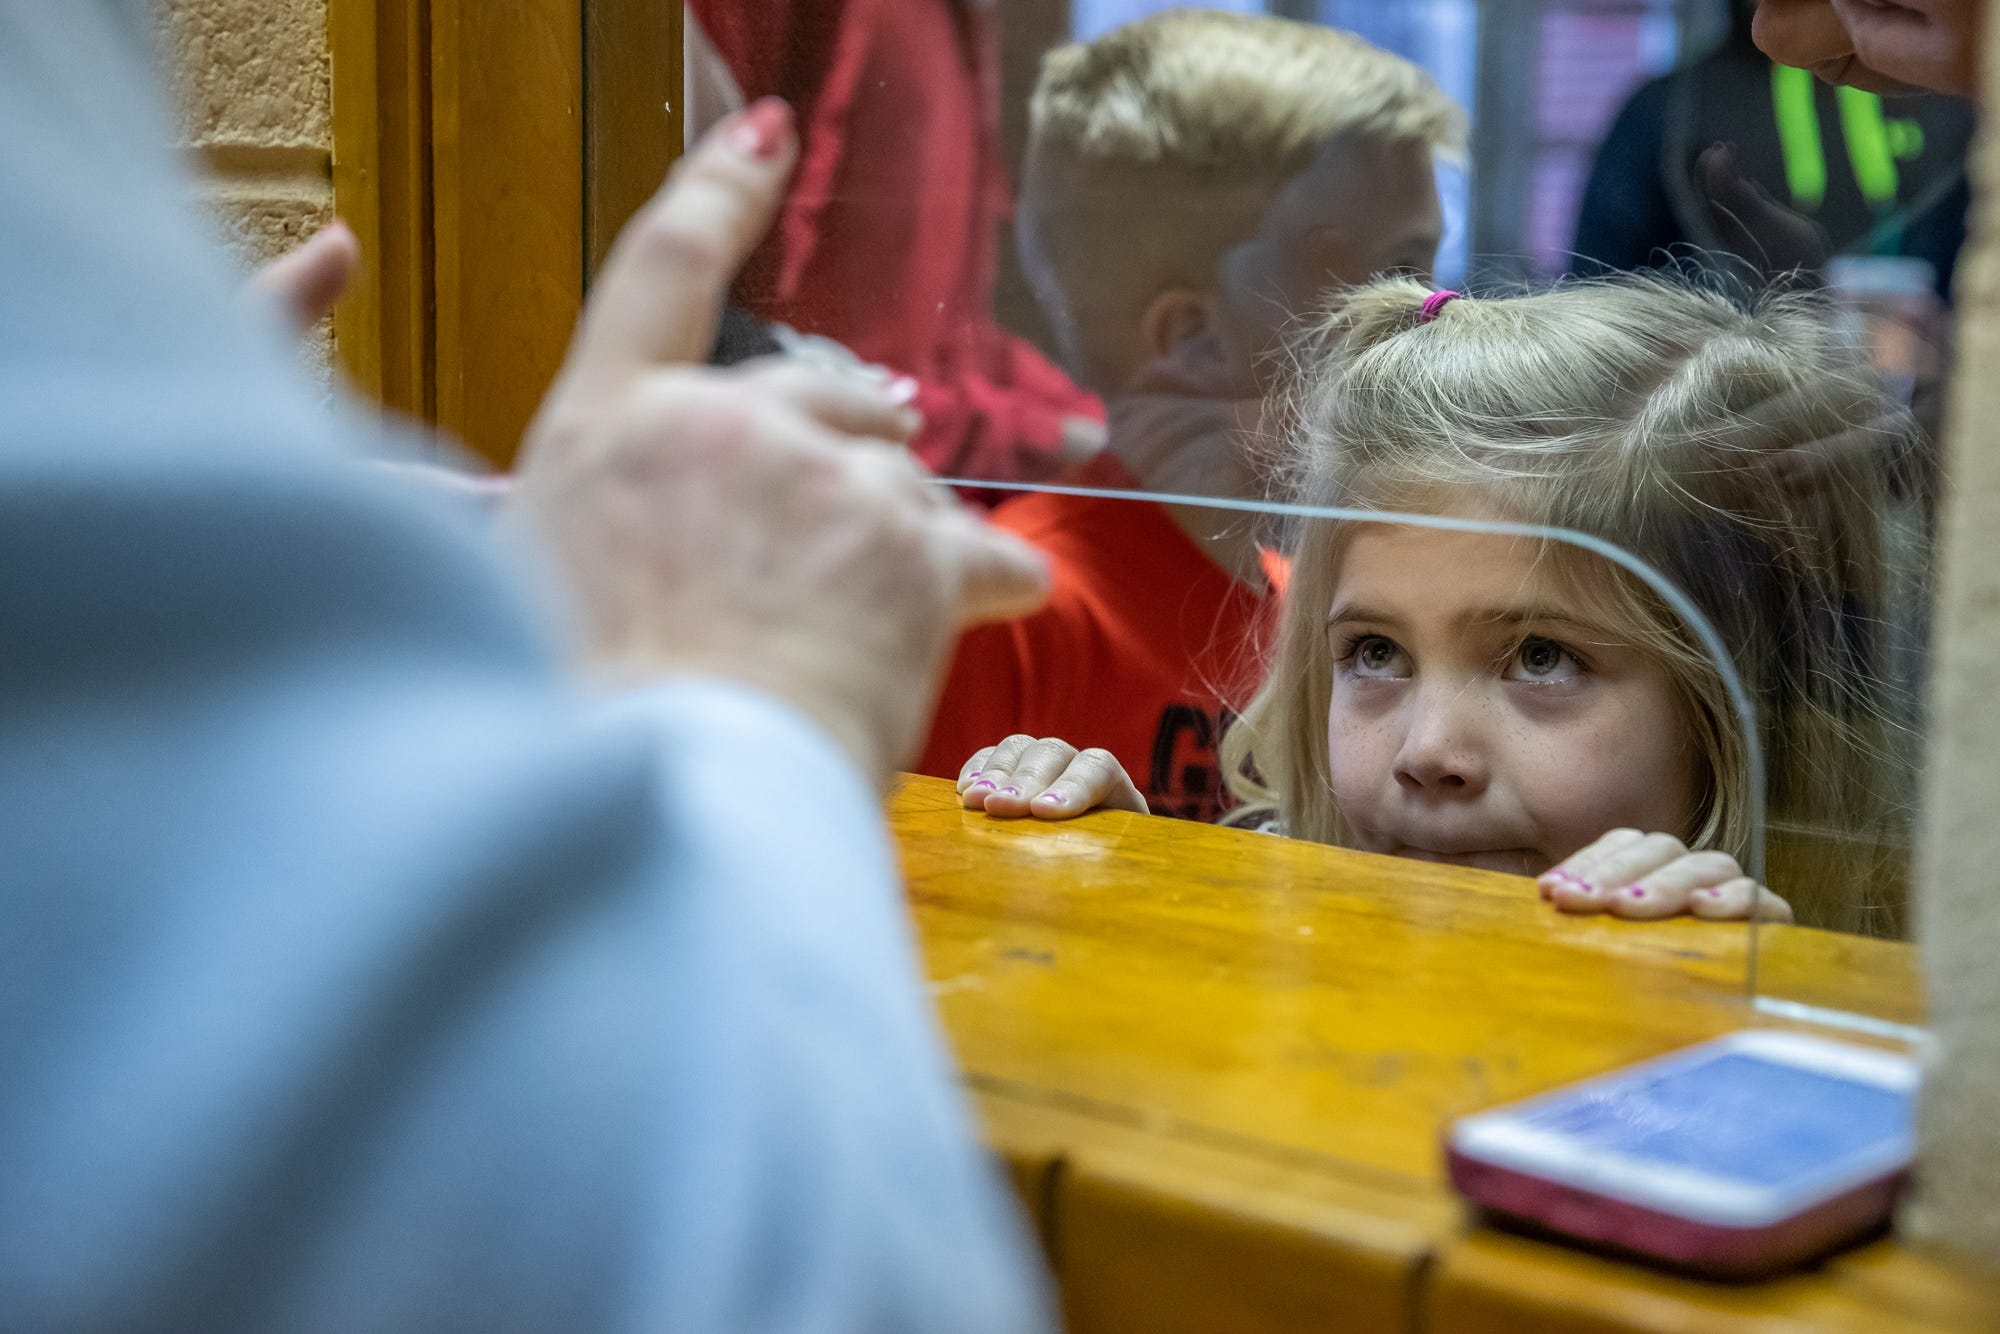 Serena Kesler, 6, of Warsaw, Ind., waits for her family's tickets before the start of a boys sectional tournament from the Elkhart North Side Gymnasium on Friday, March 6, 2020.